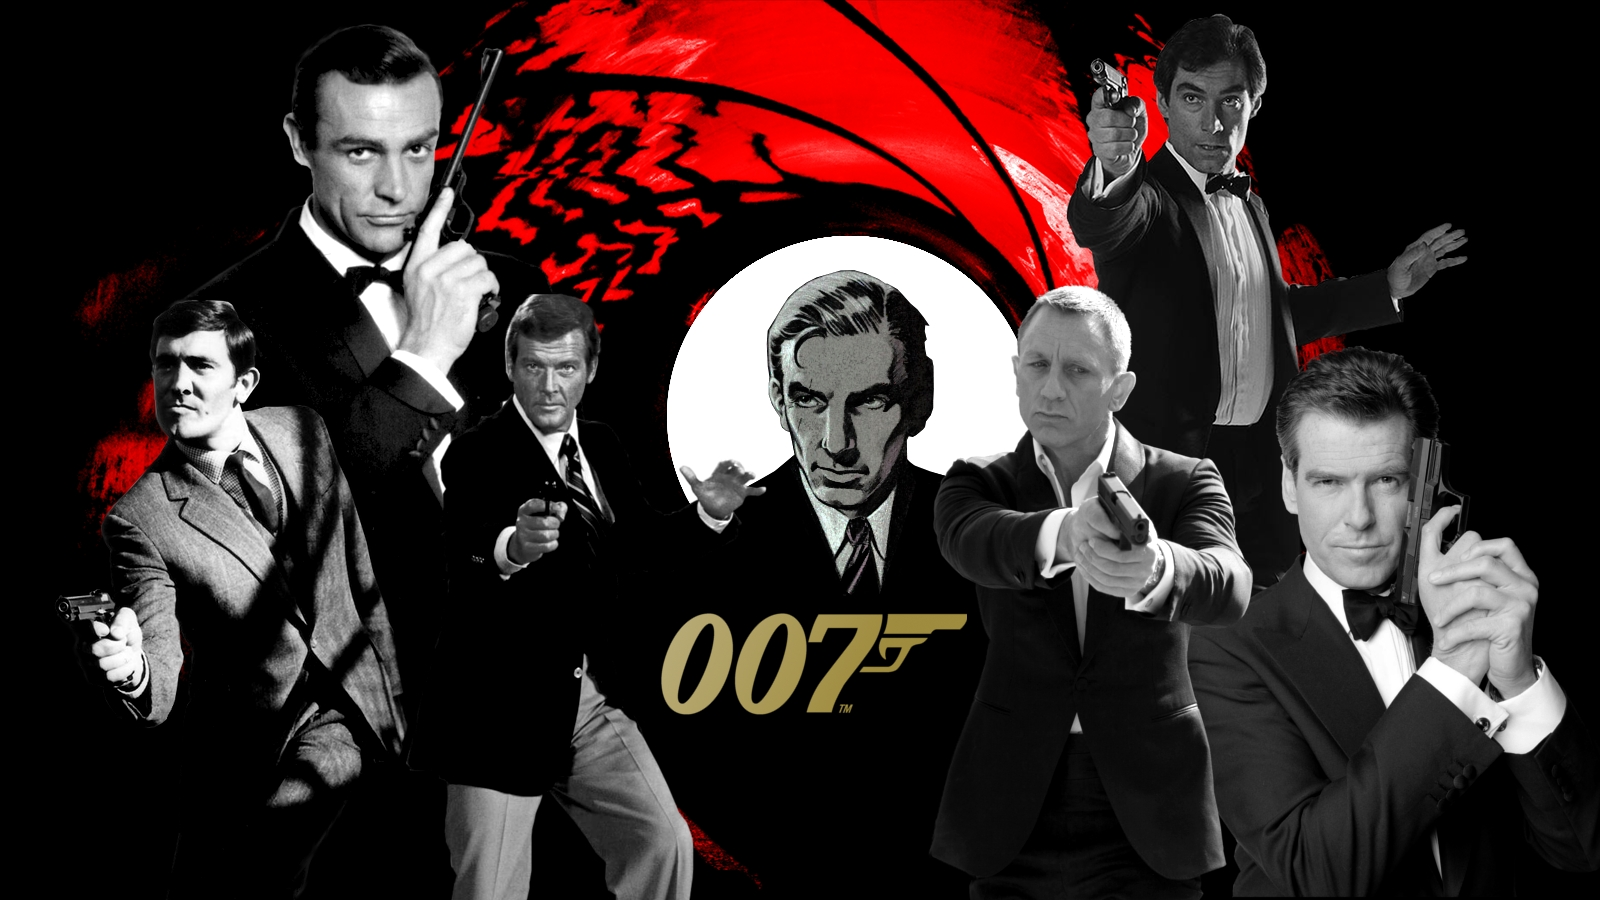 James Bond 007 Wallpaper 1600x900 by BradyMajor 1600x900